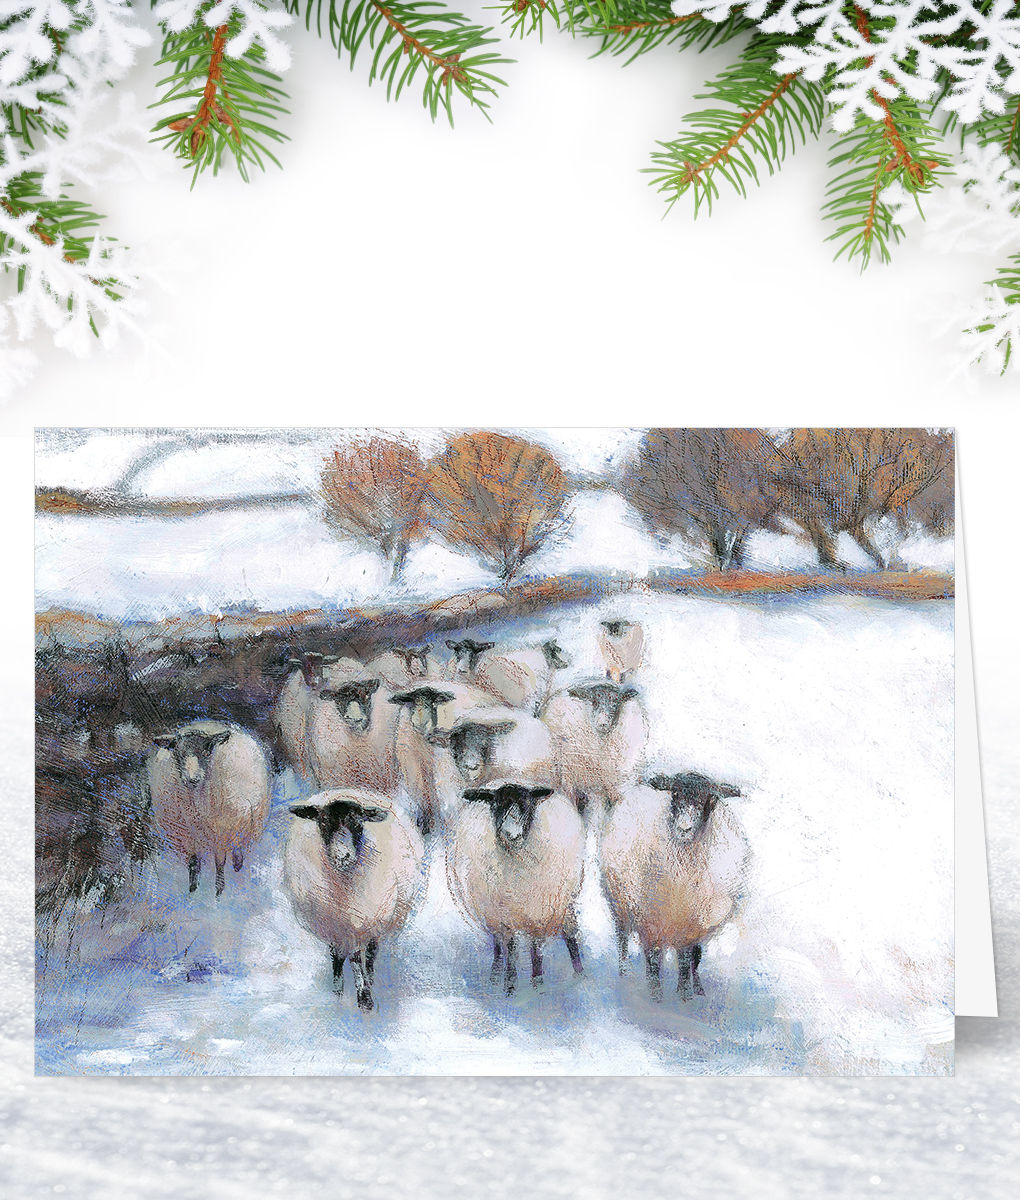 Sheep Christmas Cards 2020 Sheep in Snow Christmas Card   Corporate Collection